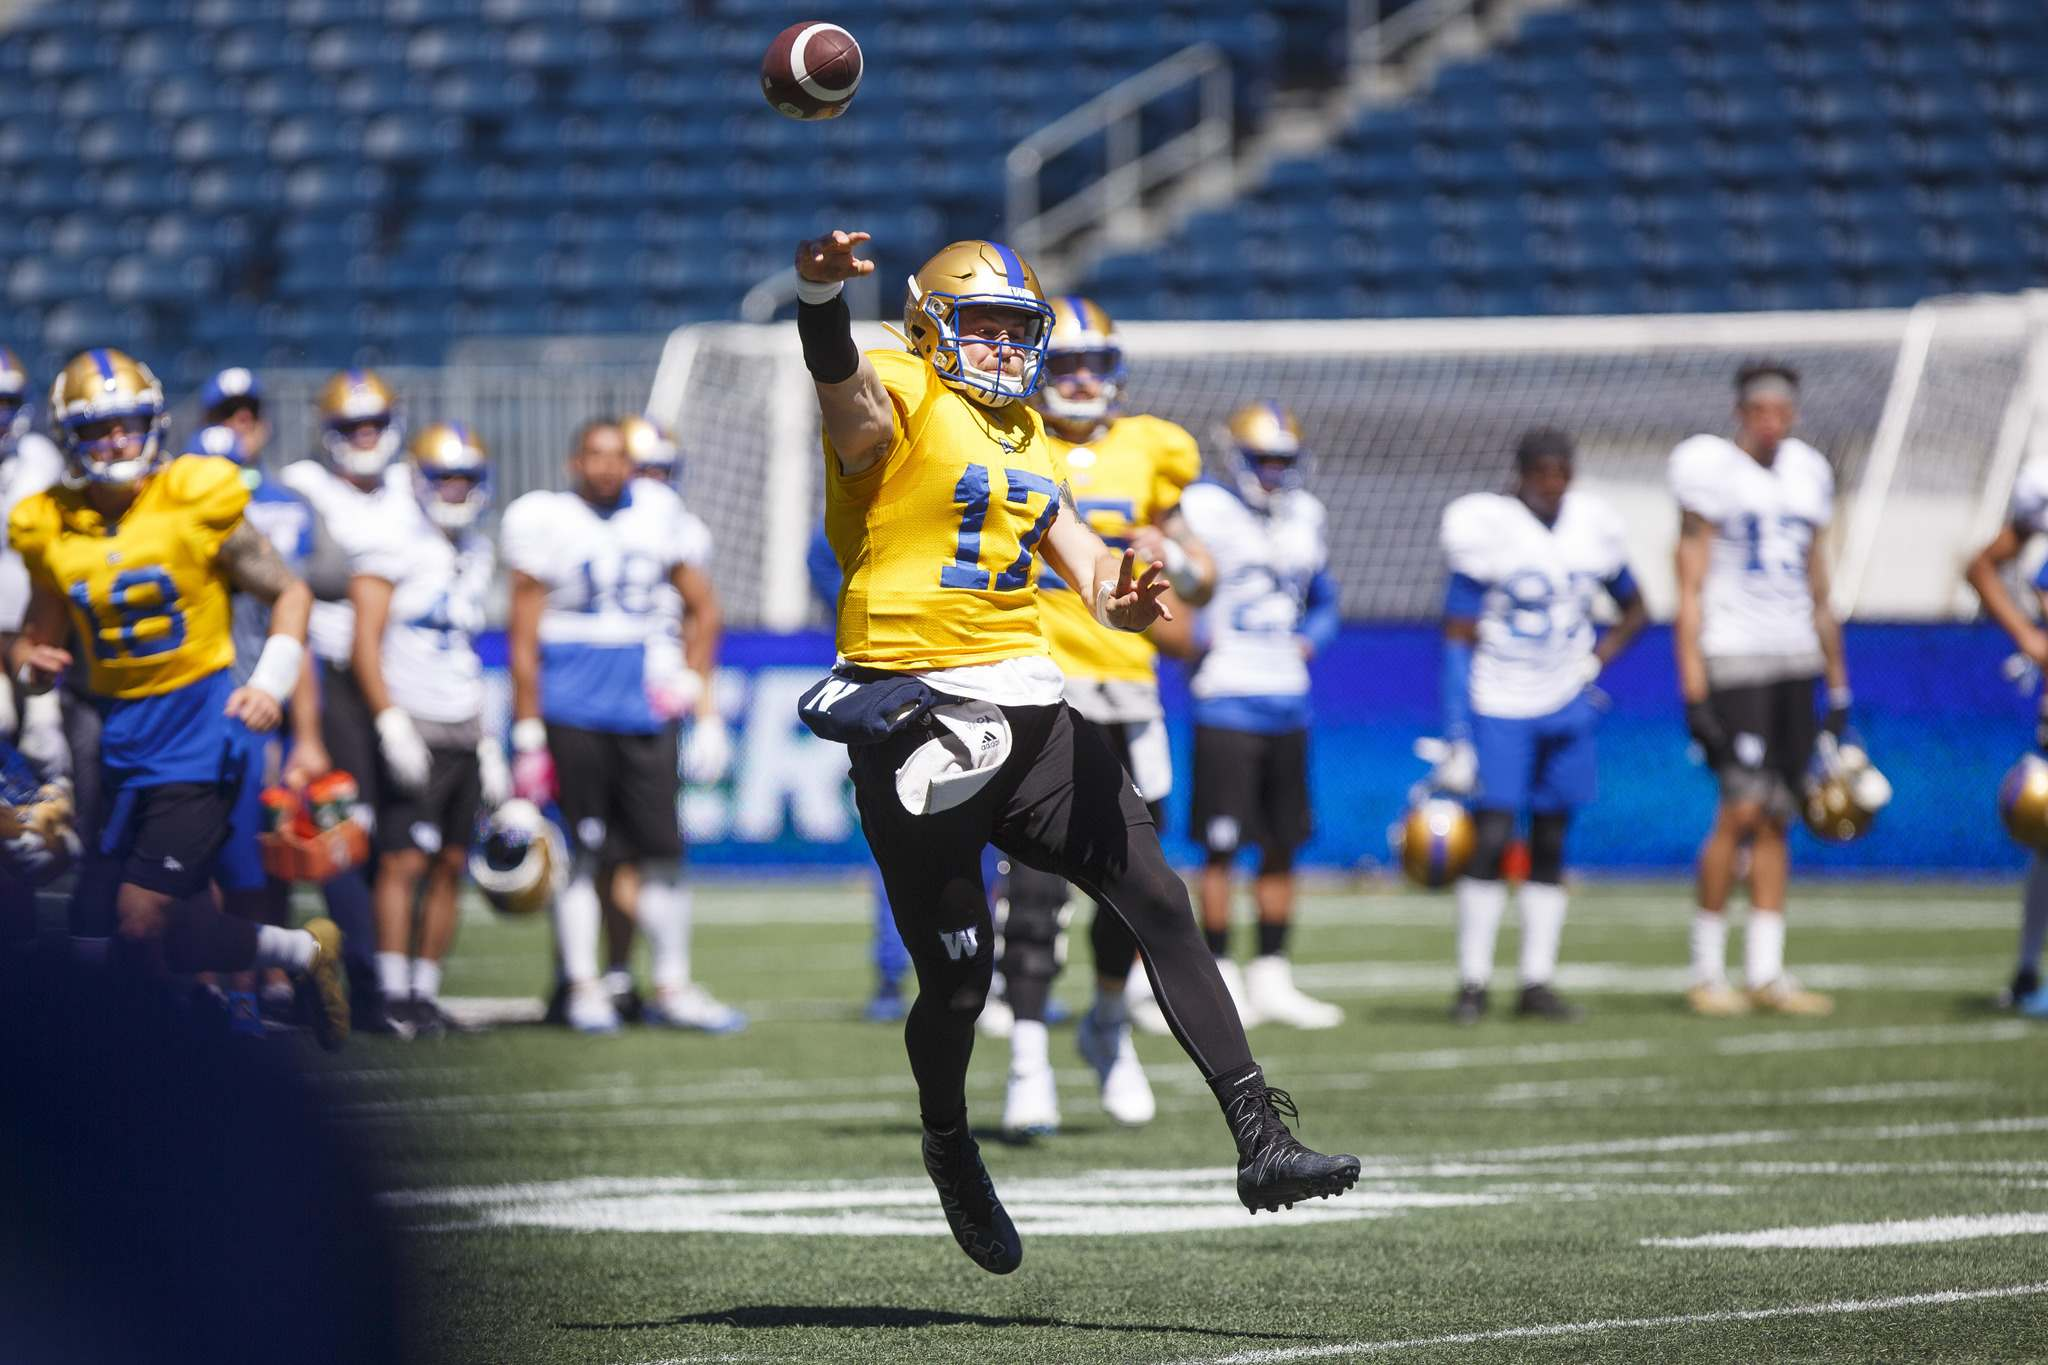 Chris Streveler is competitive, a fiery leader and doesn't think twice about laying it all on the line to help his team win. (Mike Deal / Winnipeg Free Press)</p>